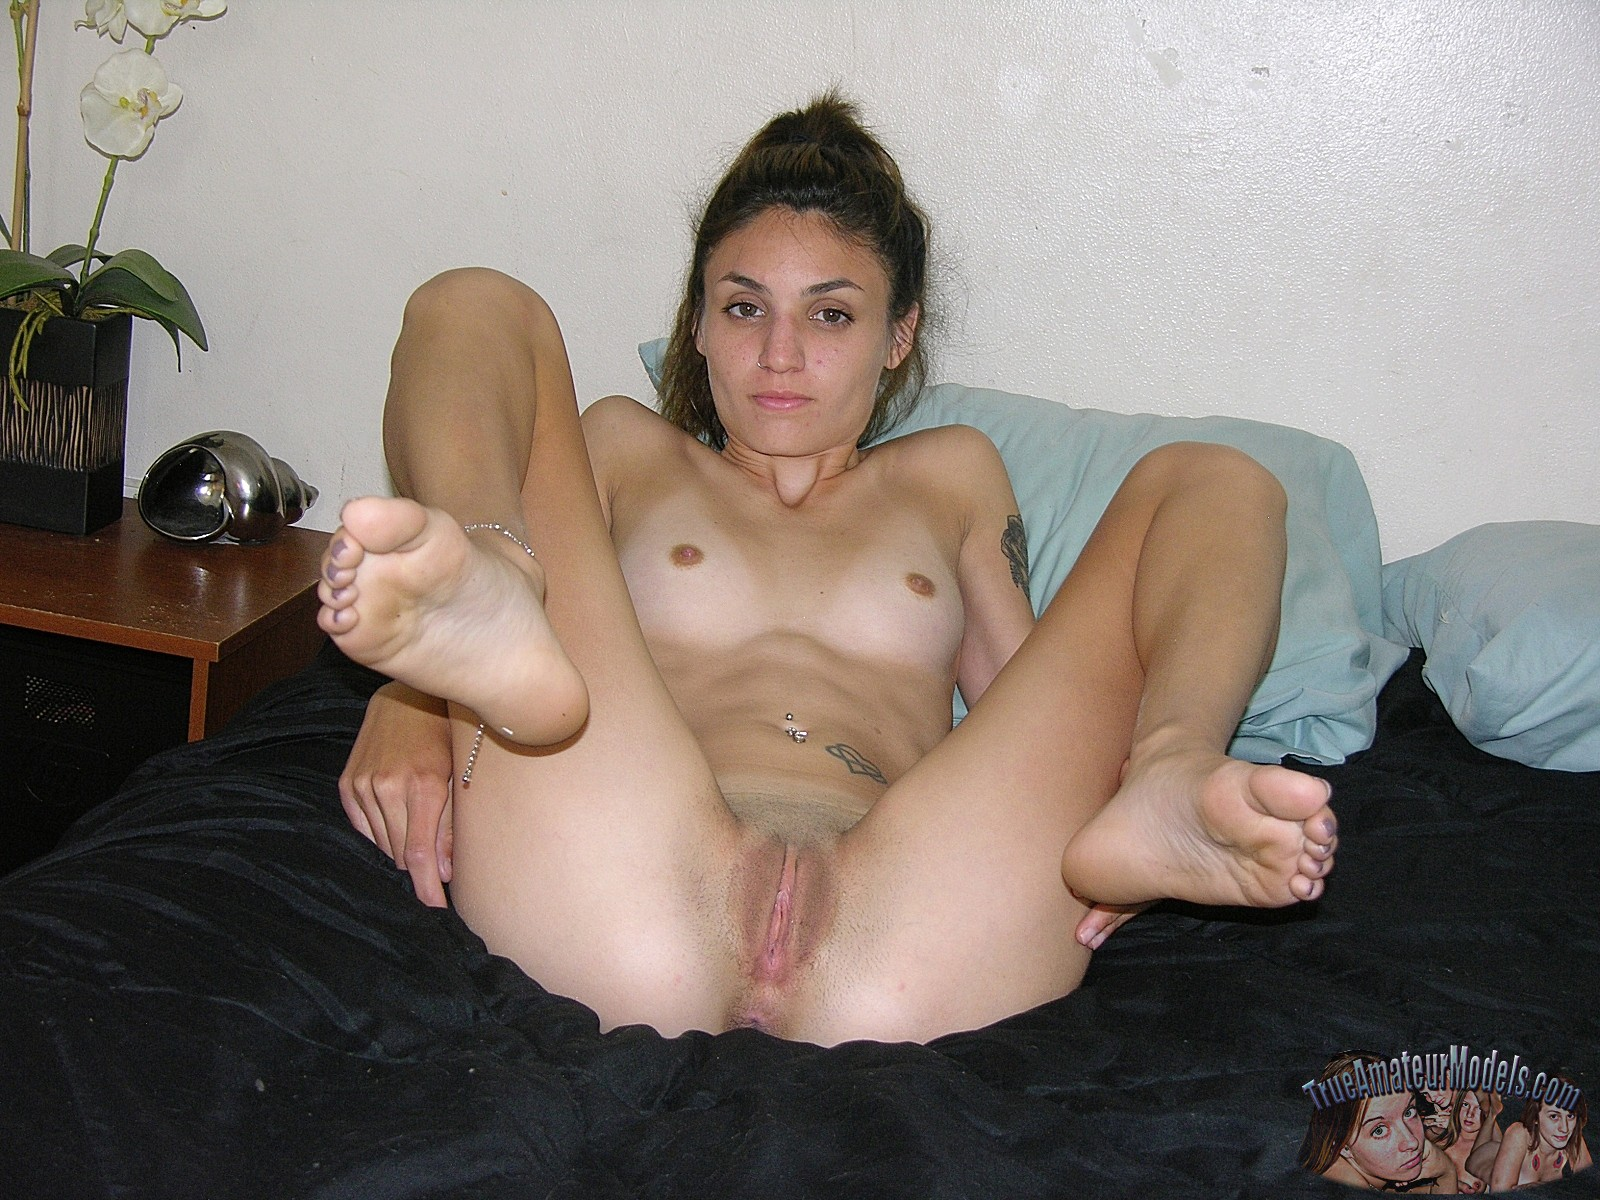 Doble penetracion amateurs porn